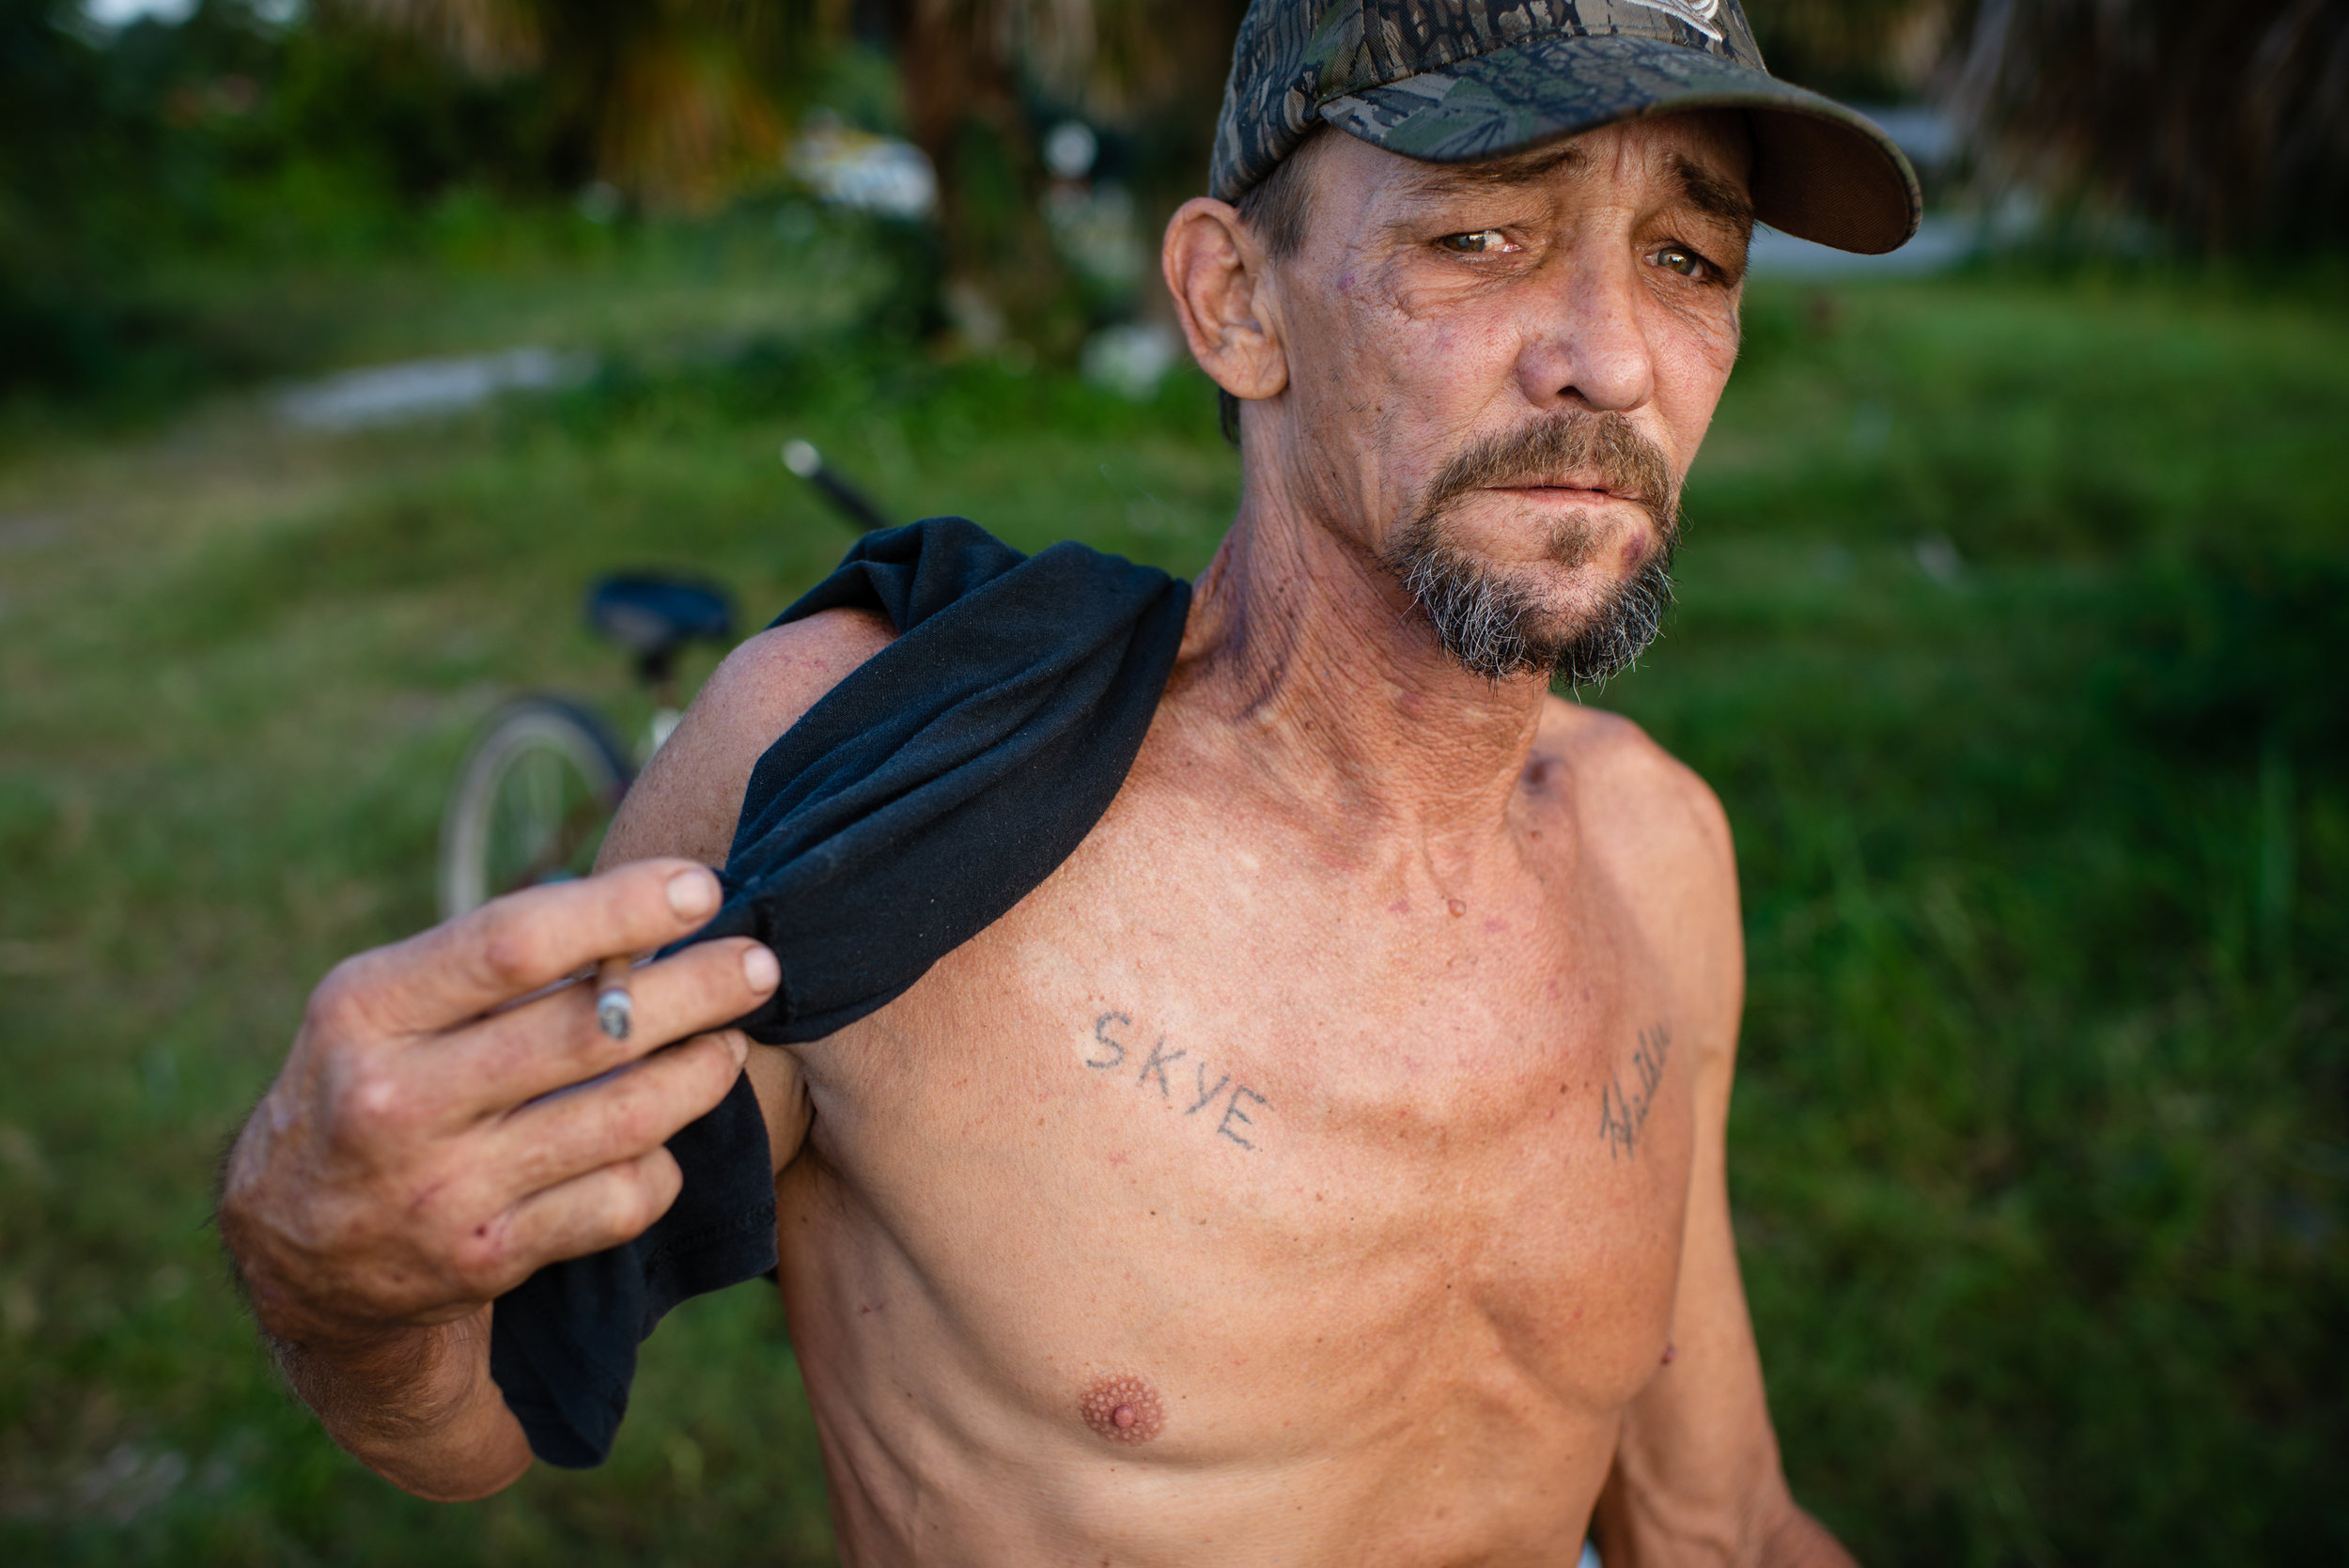 "On his chest Fred Wilsey, 53, has two tattoos, one for his daughter Skye and the other for his girlfriend Heather Petty. Fred and Heather have been homeless since 04 July, 2018. Fred has spent most his life, 38 years, living off the what the Apalachicola bay provides, Heather, who came to the area 10 years ago to care for her dying father joined Fred on the boat. Five years ago, because of smaller hauls, they quit harvesting oysters full-time and began cleaning rental properties on nearby Saint George Island, a popular tourist destination. When they began cleaning homes they would make combined $1500 a week, now $500 if they are lucky enough to find work. ""People come here because of oysters,"" said Fred. ""Now that there is a depletion of oysters, fewer people are coming here."" With little work and loss of their savings, Fred and Heather now sleep on the docks and have returned to fishing, not always legally, to survive. ""The water is all we have left,"" Heather said. ""You have to be a felon to eat around here. That is what they are turning us it into."""